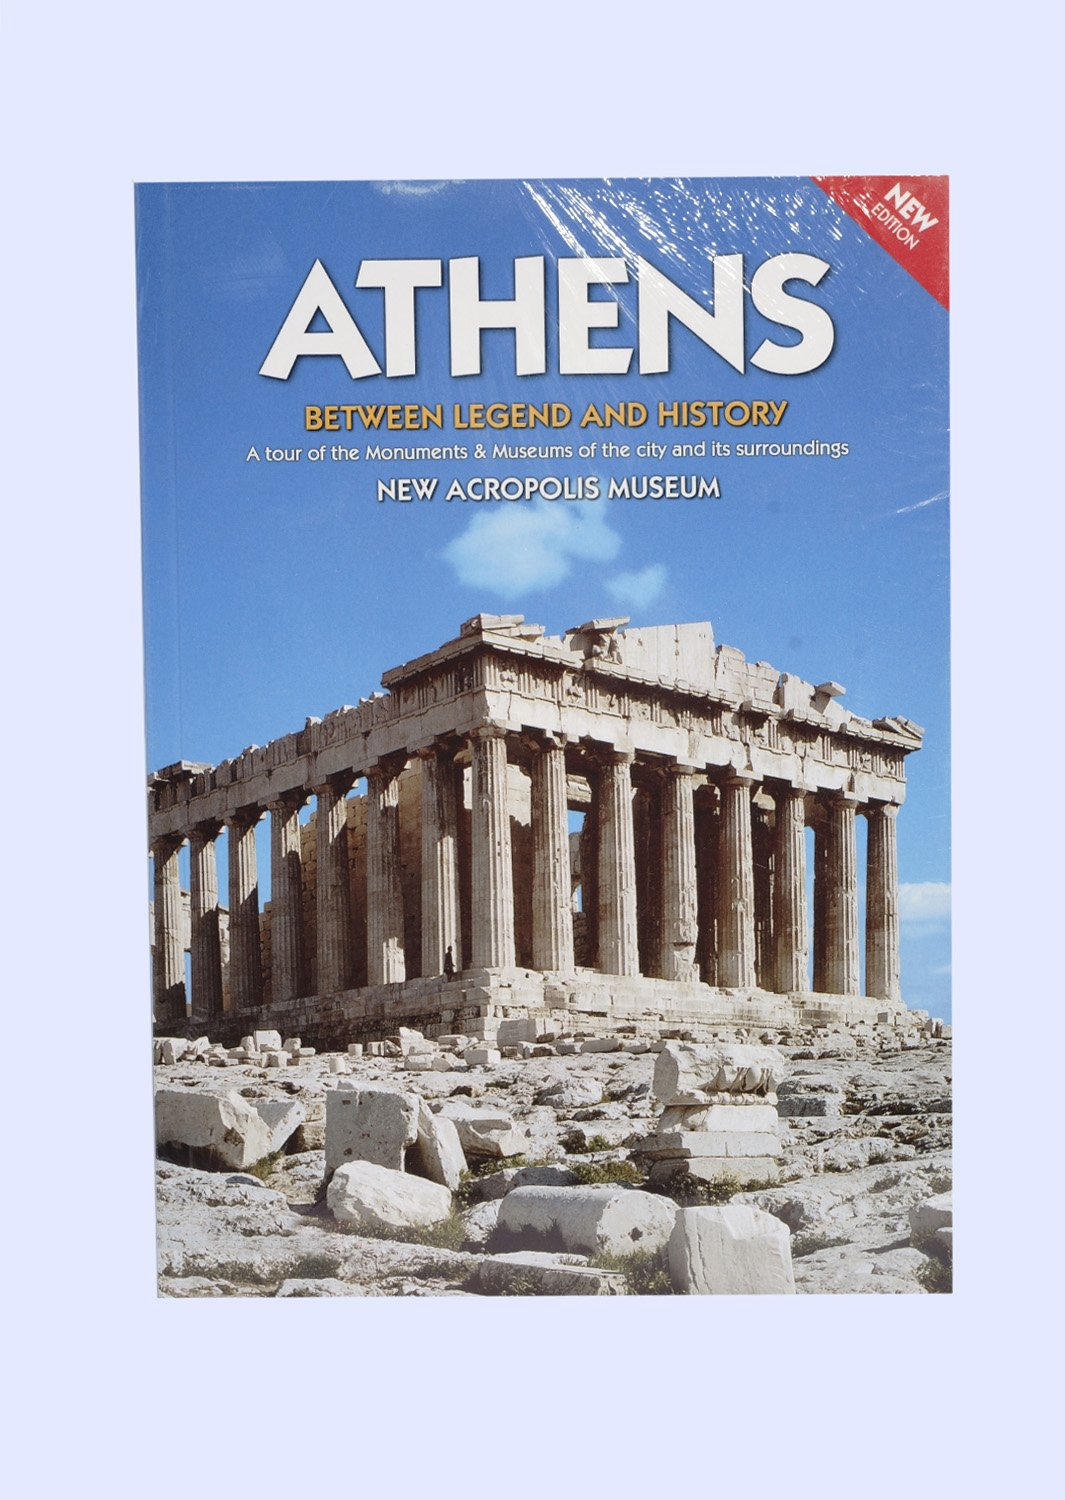 Athens, between legend and history book